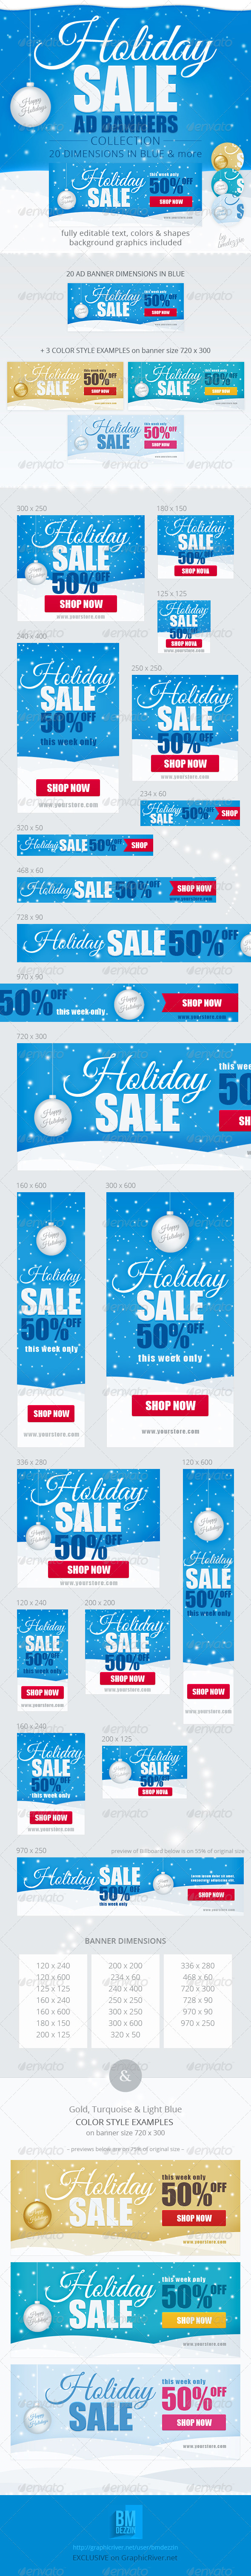 GraphicRiver Holiday Sale Web Ad Banners 6211368